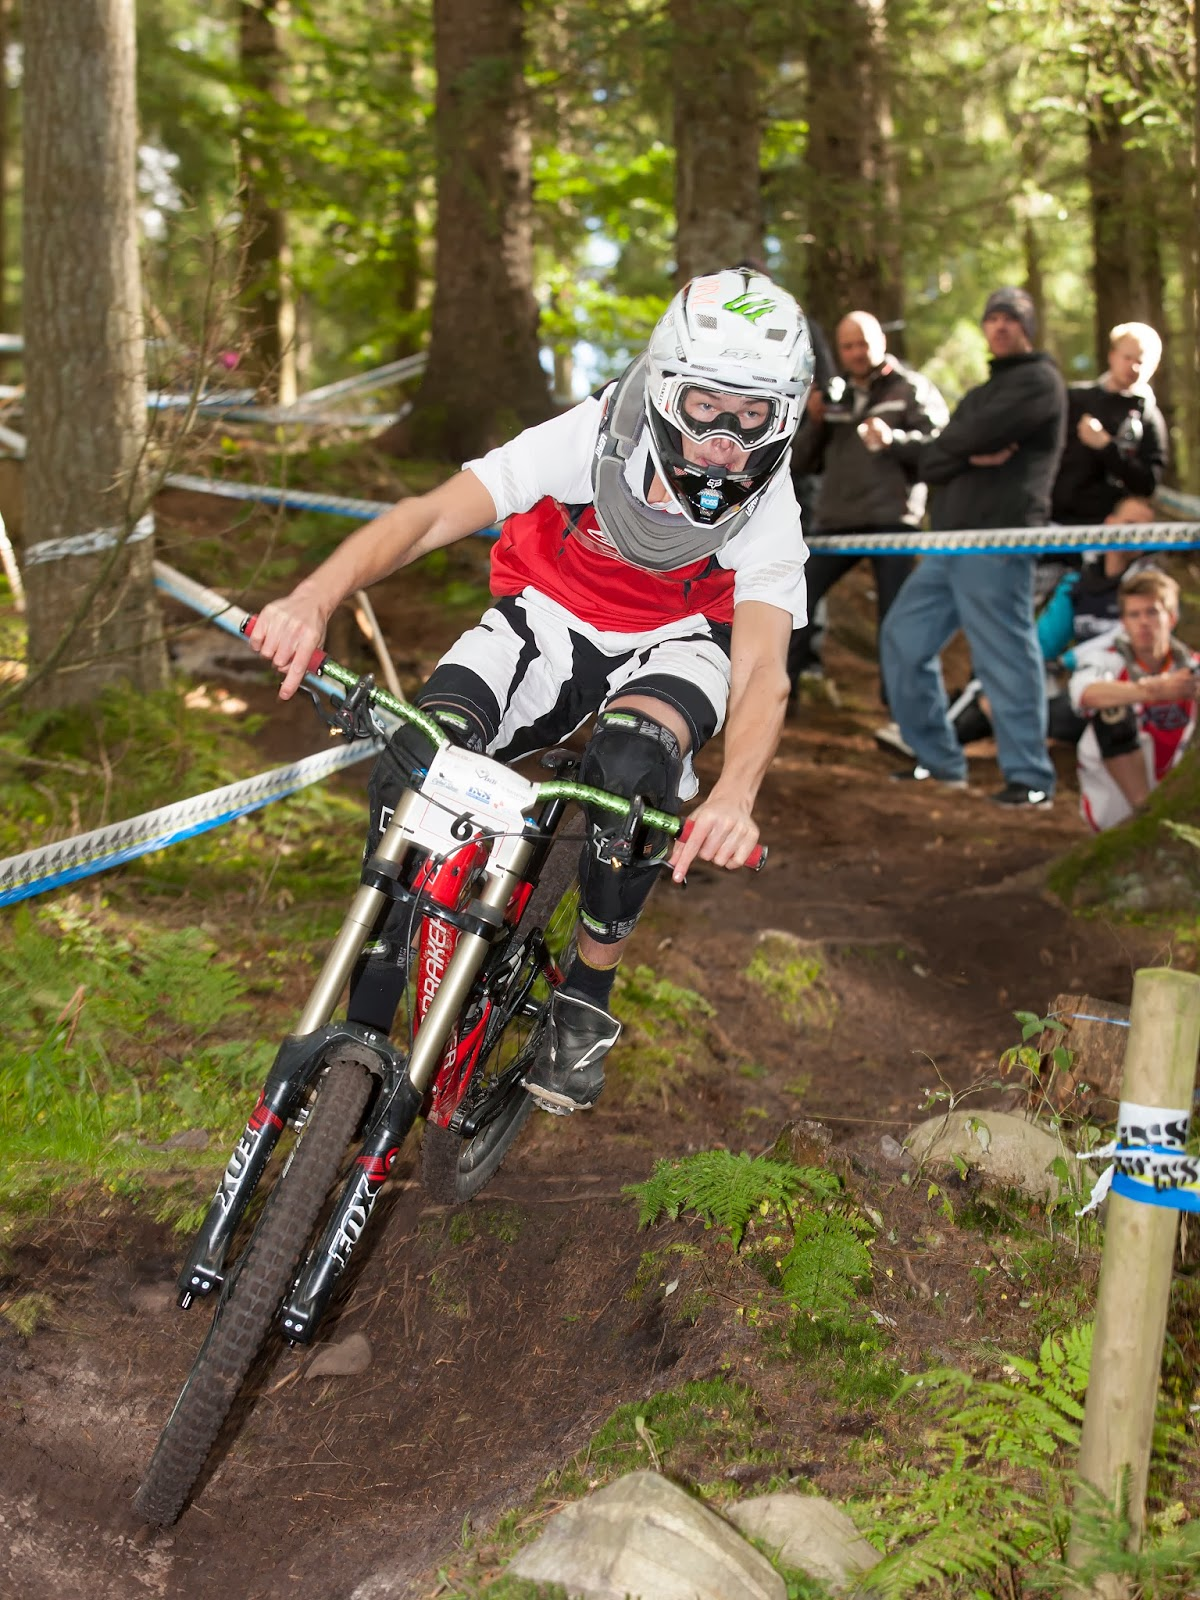 Frederik Leth riding downhill in Rold at the danish downhill cup